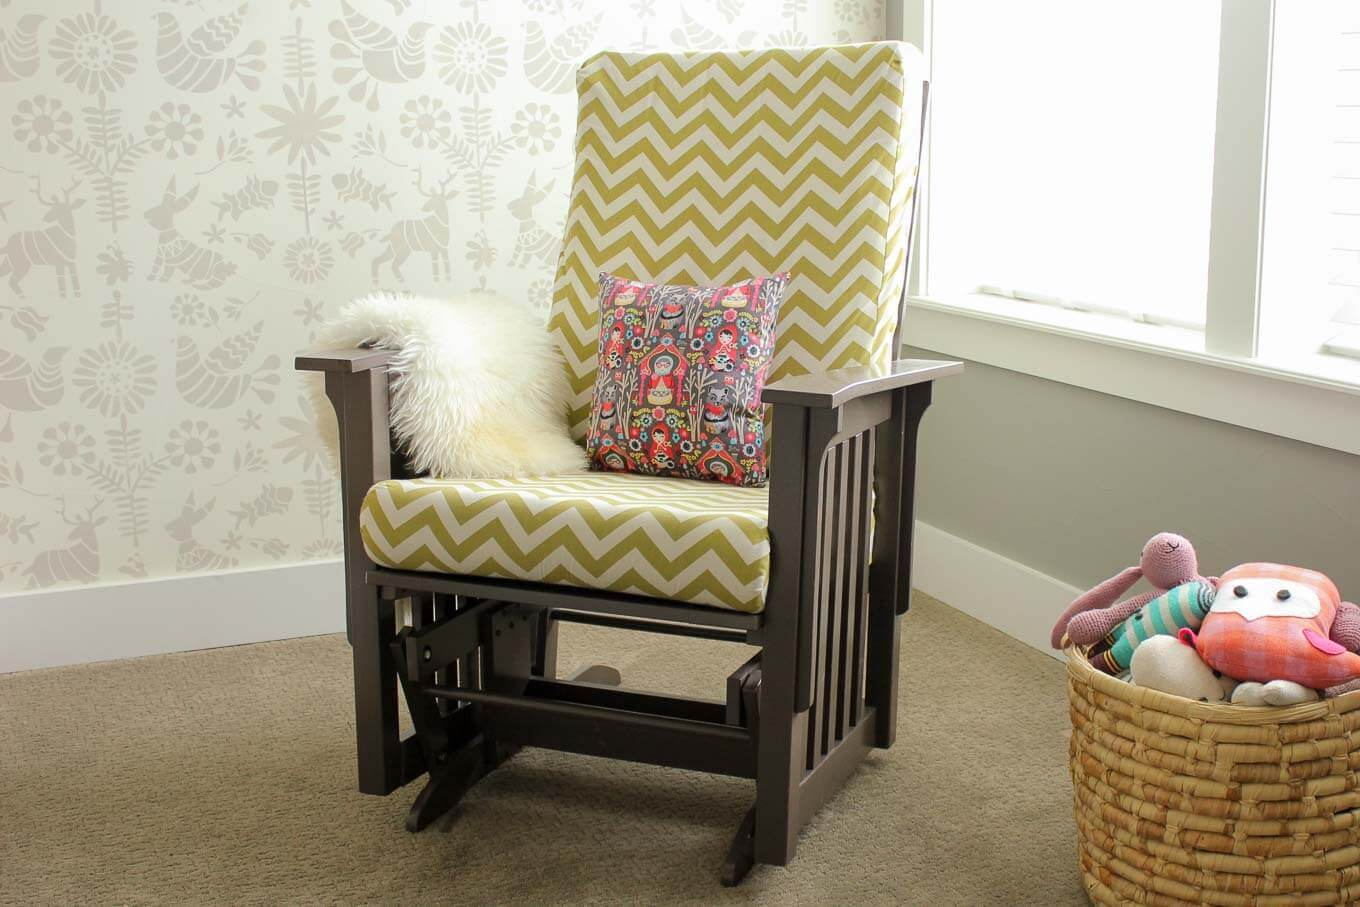 Super thorough tutorial on how to recover a glider chair for a baby's nursery. Instructions on sewing replacement slipcovers and painting the chair. Click to learn how to DIY your own glider makeover. | MakeAndDoCrew.com